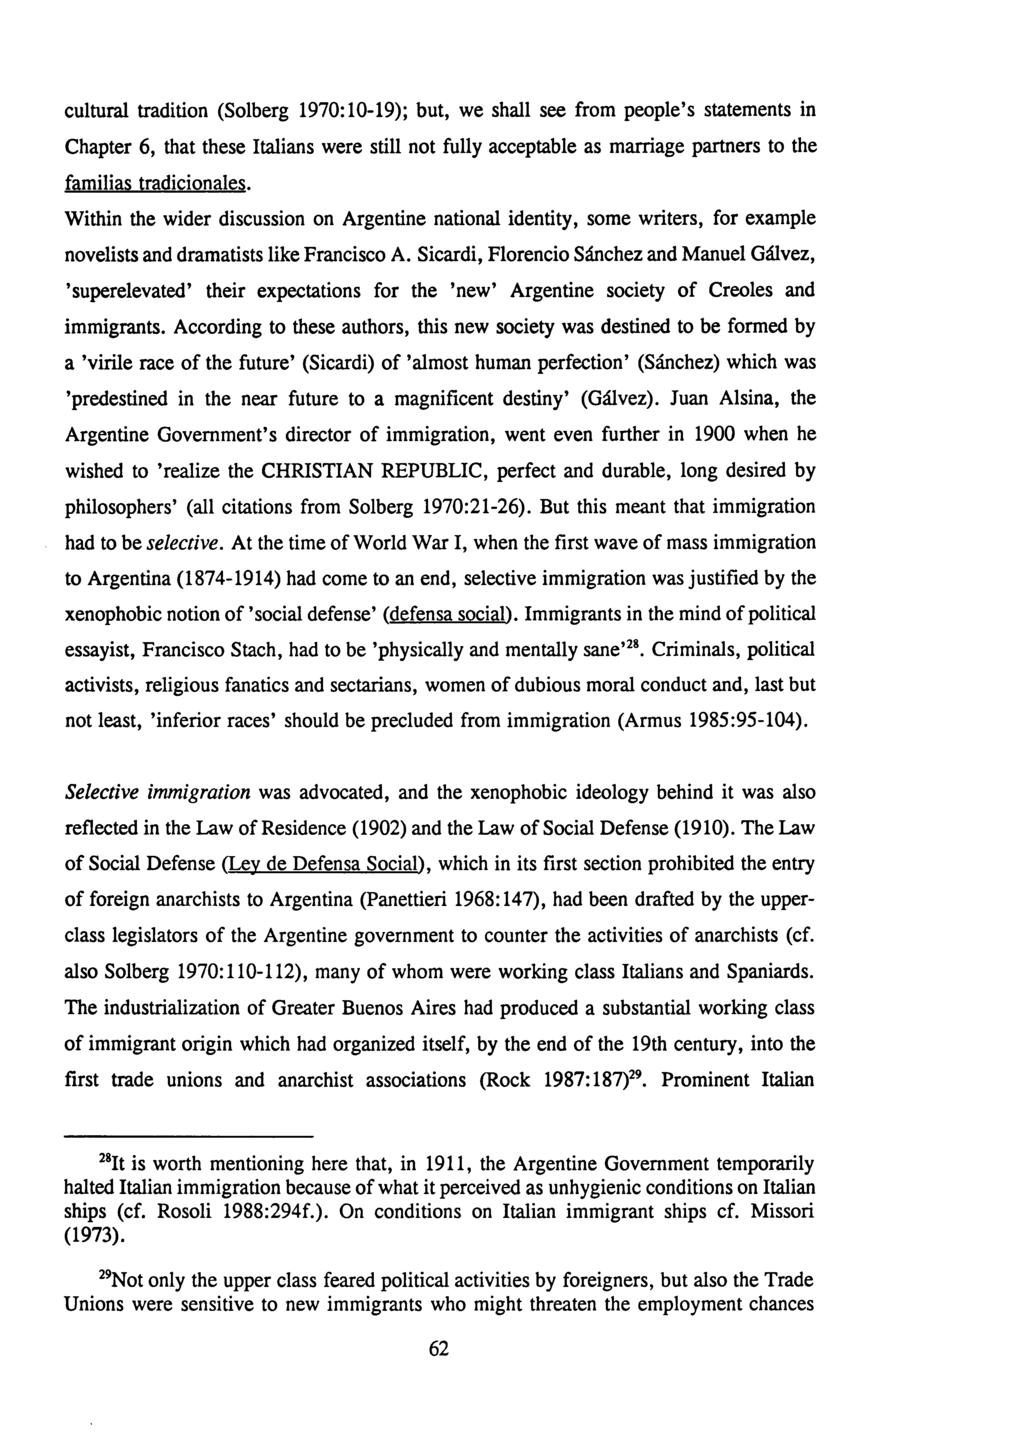 ITALIAN IMMIGRANTS IN CONTEMPORARY BUENOS AIRES: THEIR RESPONSES TO